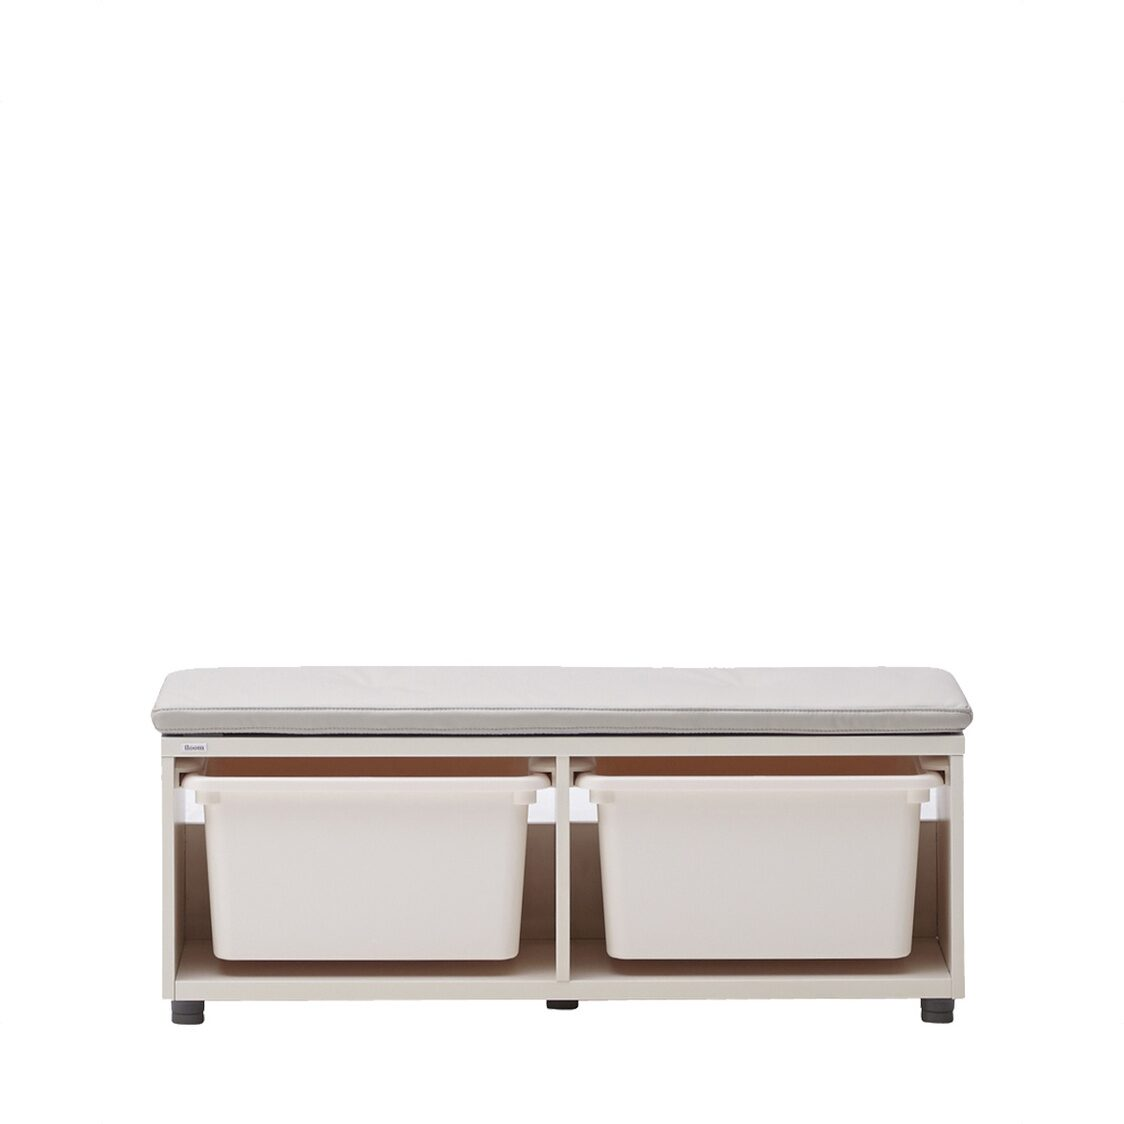 950W Bench with storage HSFP191-IVIV